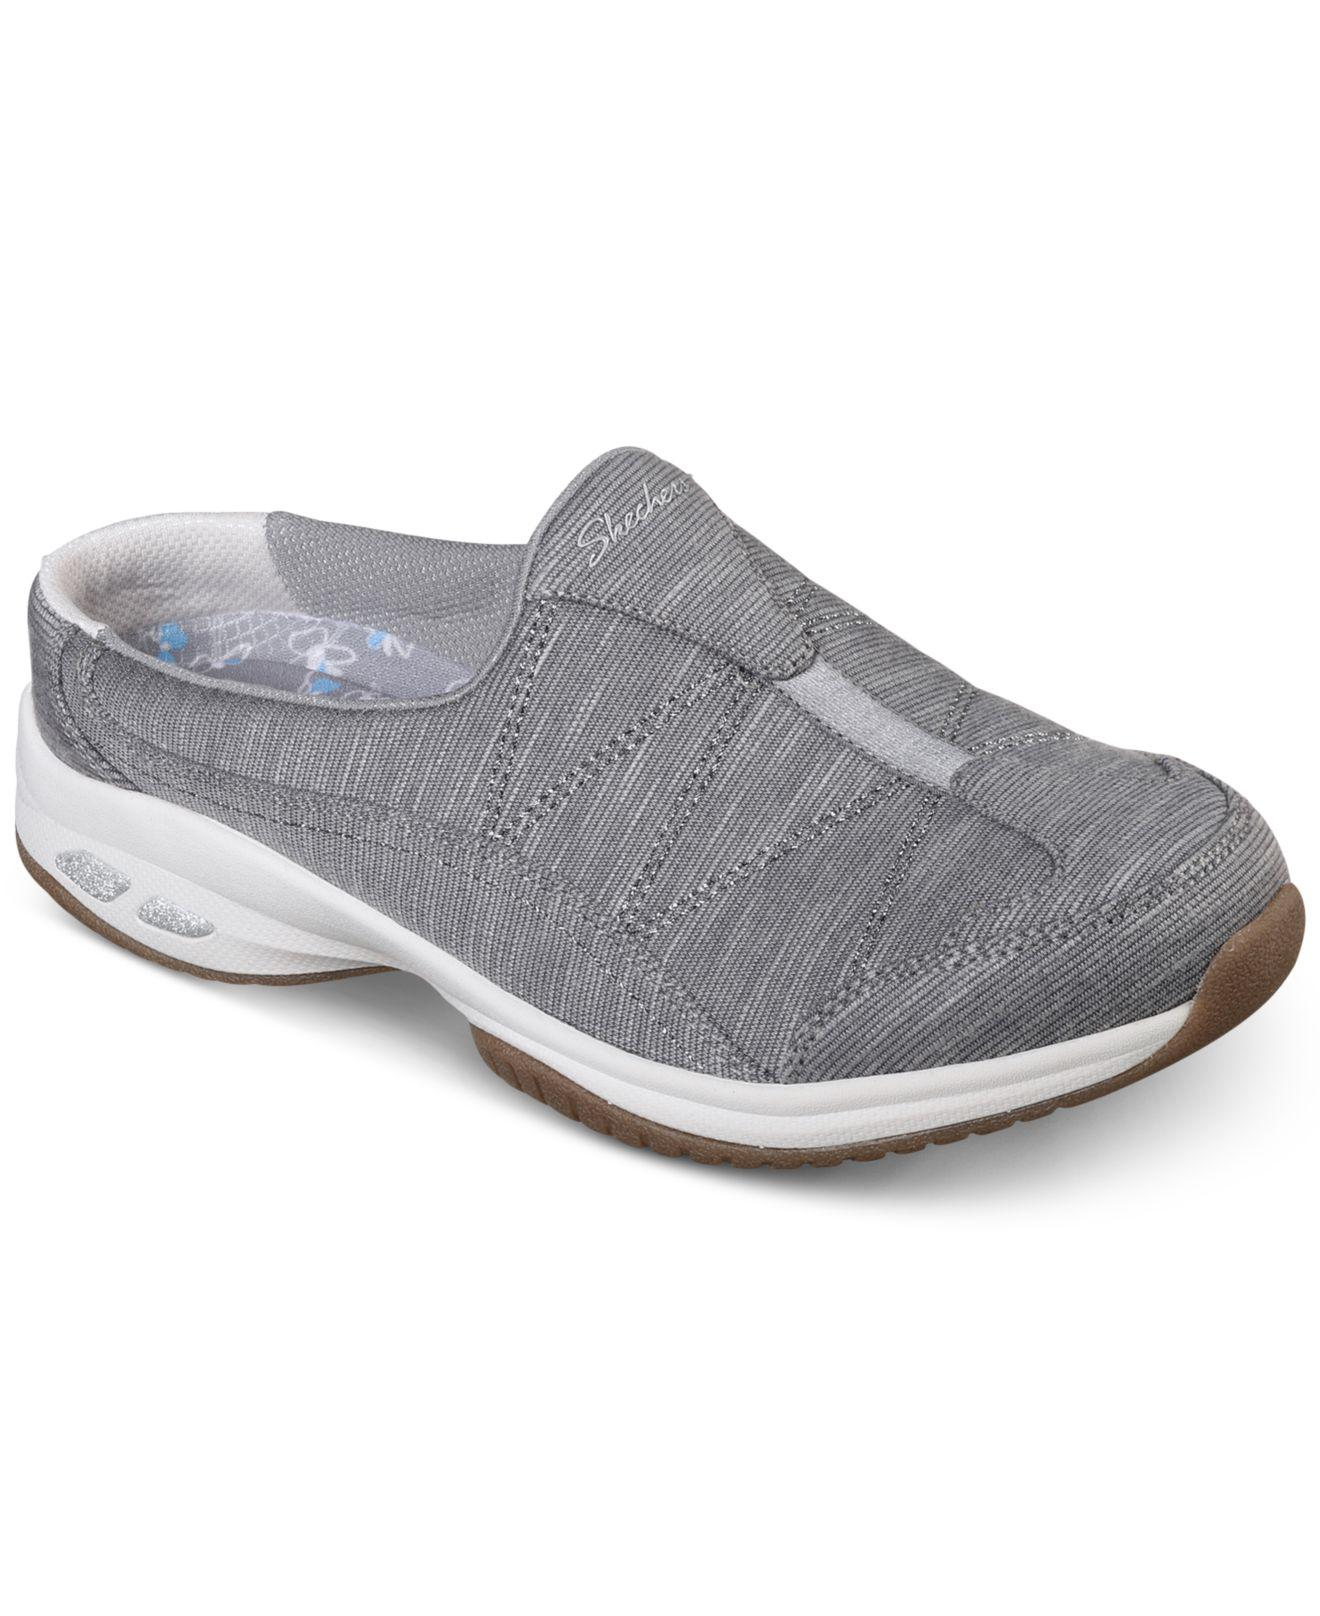 Skechers Relaxed Fit Commute Knitastic Sneaker Clog (Women's) nGebkN0